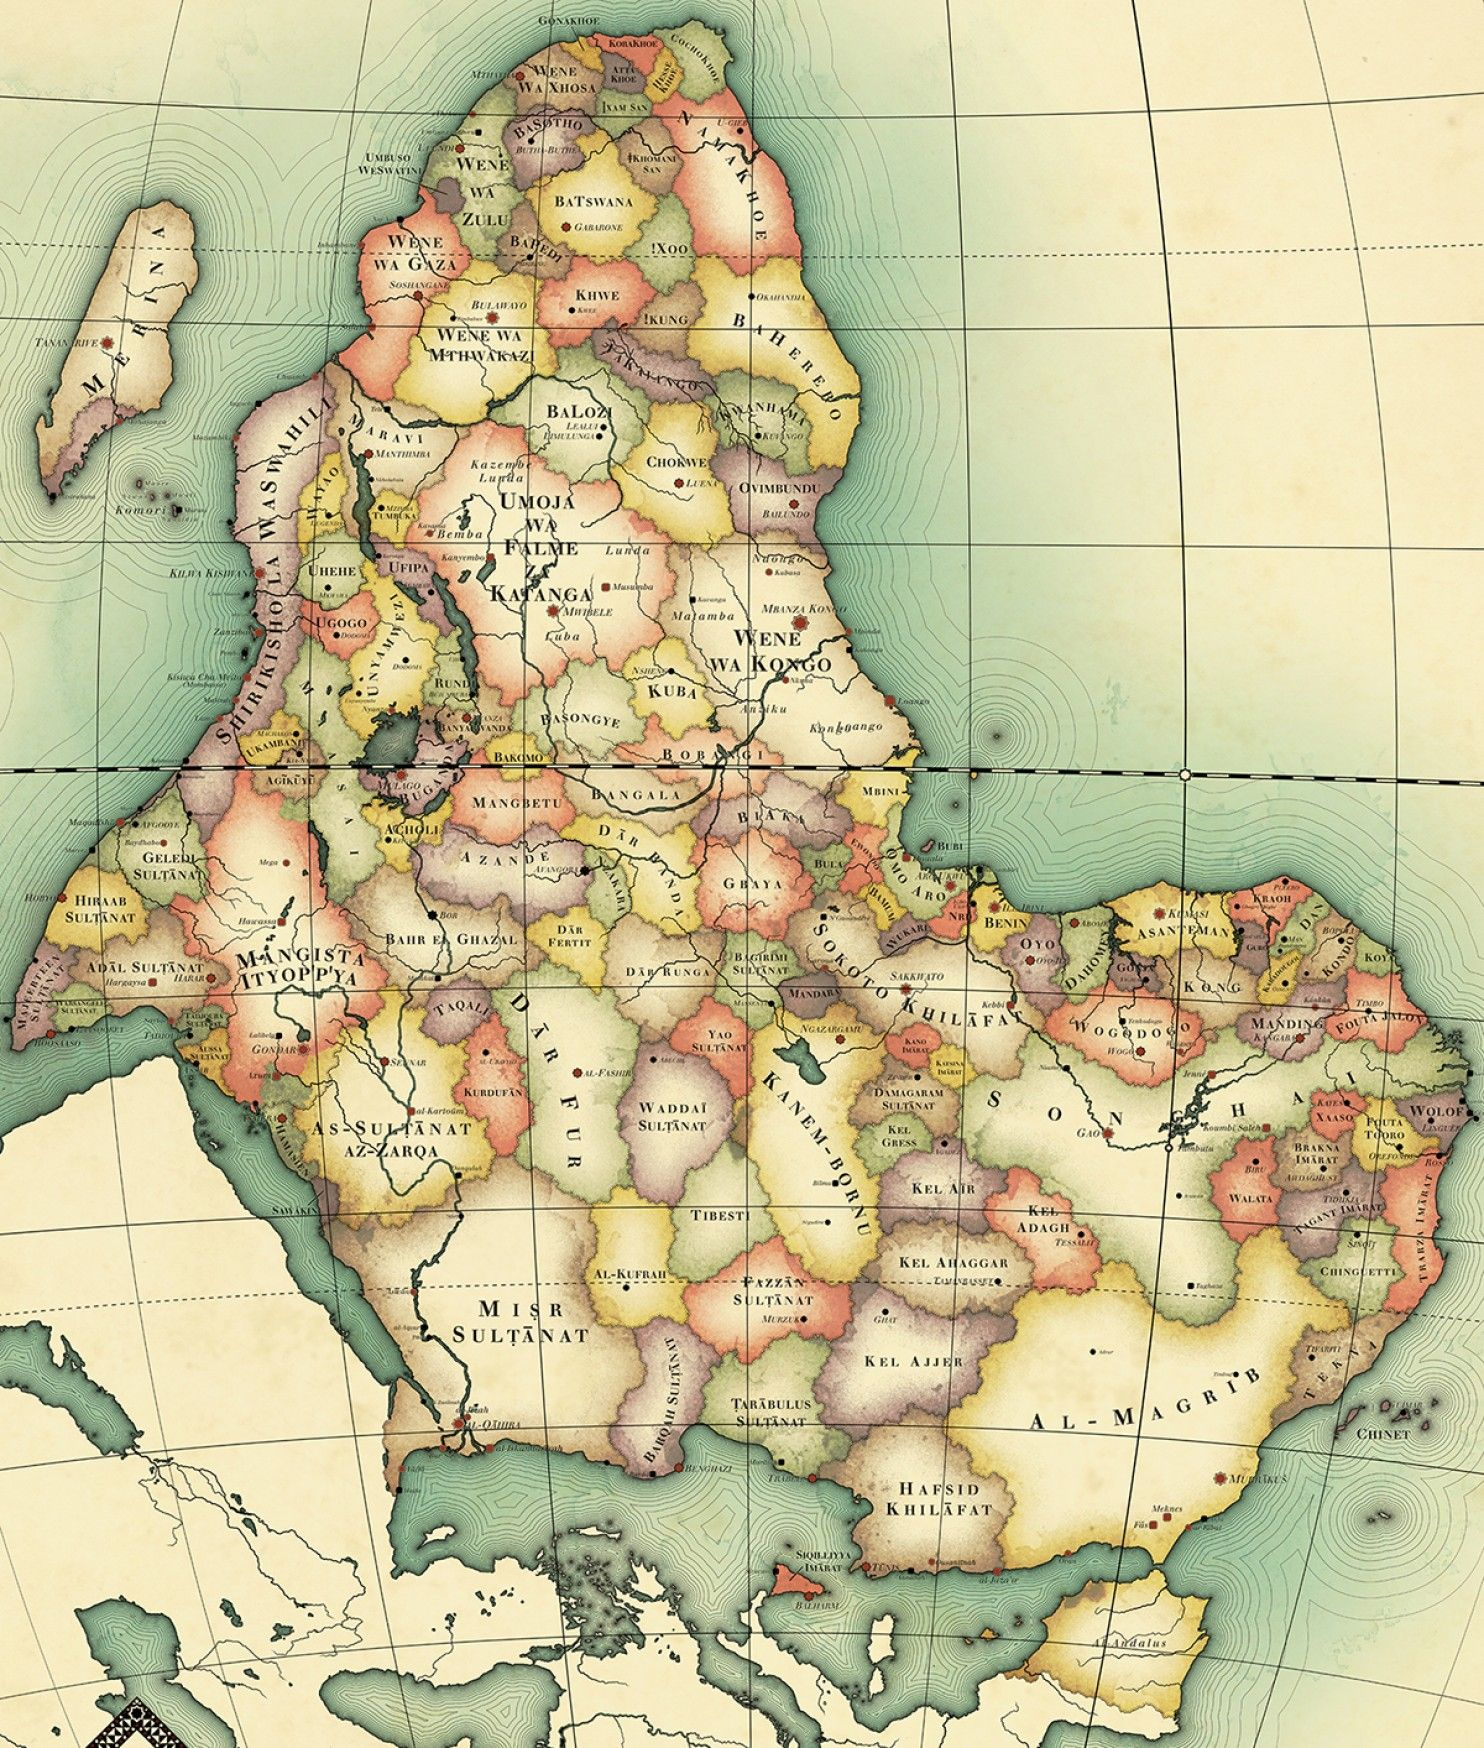 40 more maps that explain the world | History we need to remember